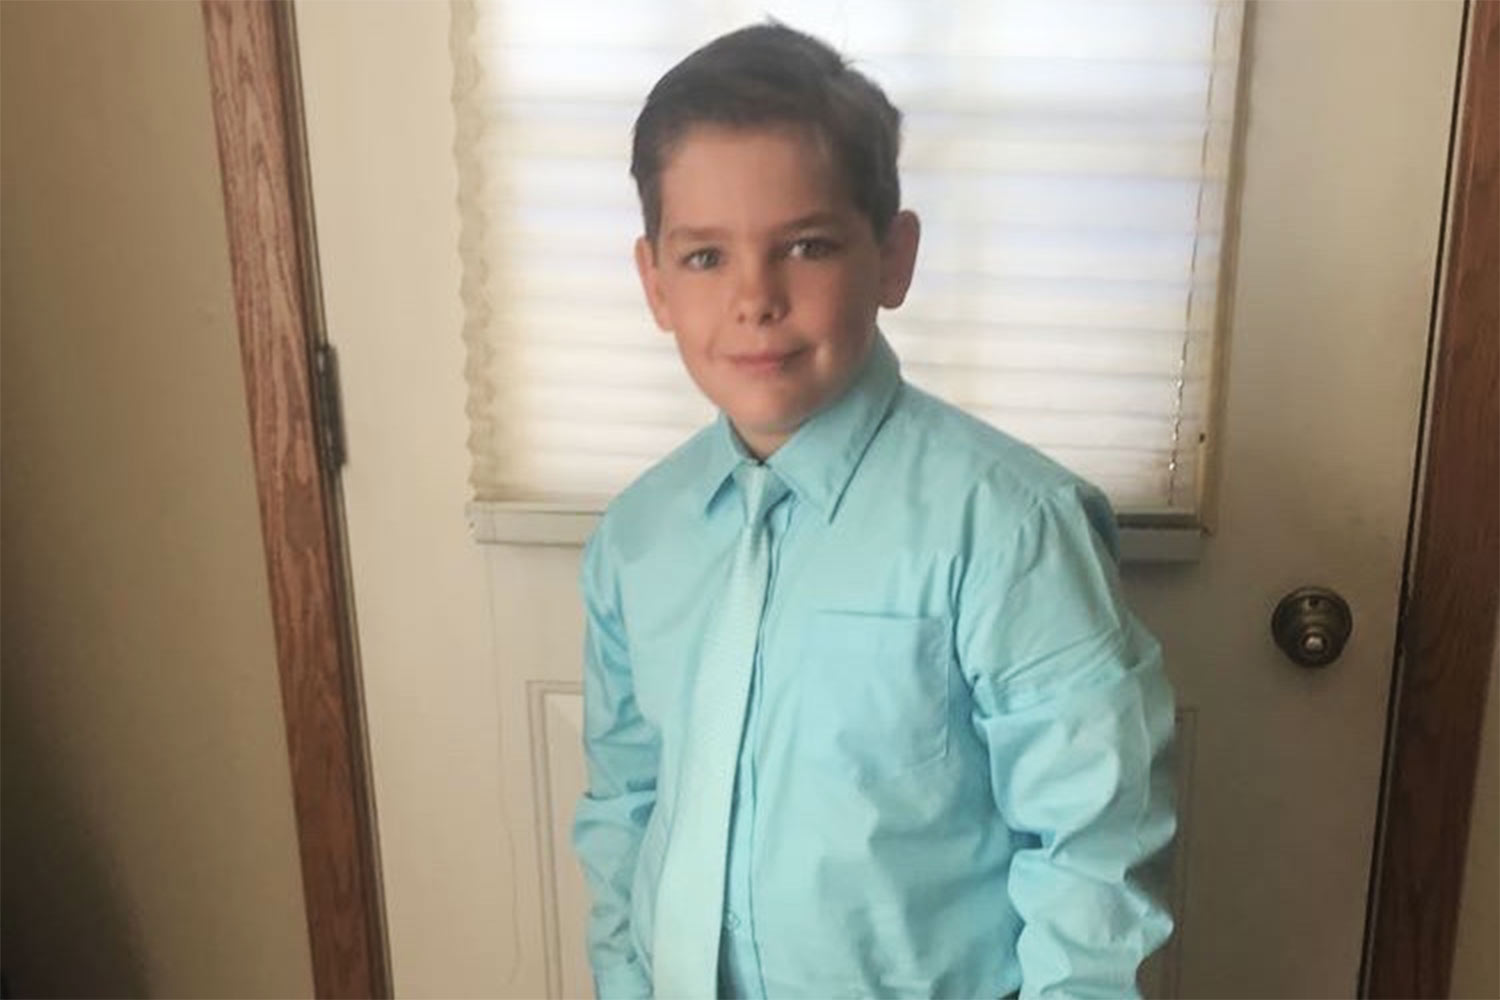 Boy Who Suffered Fatal Head Injury Donates Organs on 10th Birthday: 'Make a Difference'